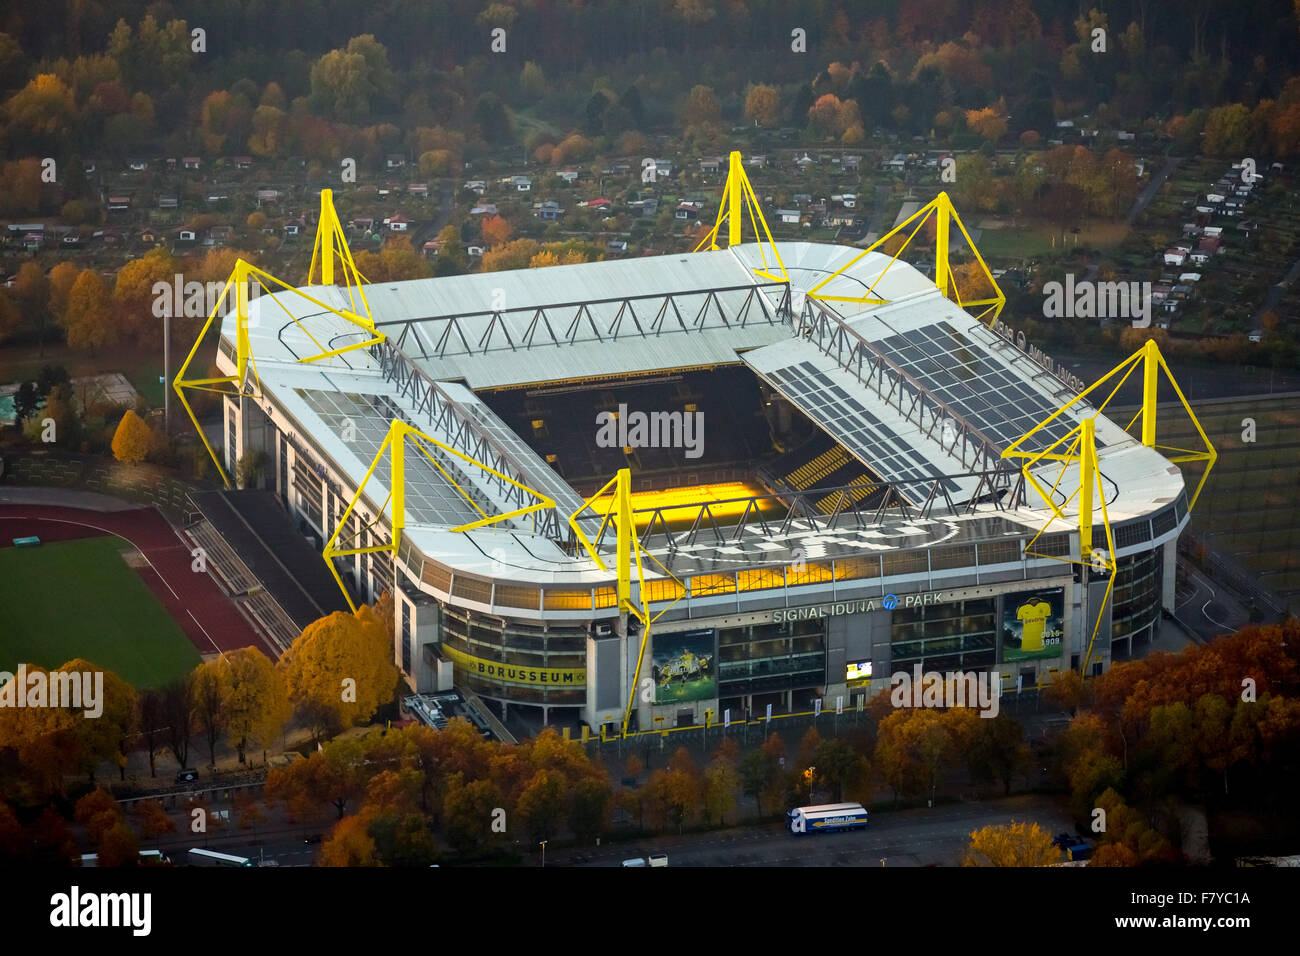 signal iduna park westfalenstadion bundesliga stadium of the stock photo 90956582 alamy. Black Bedroom Furniture Sets. Home Design Ideas